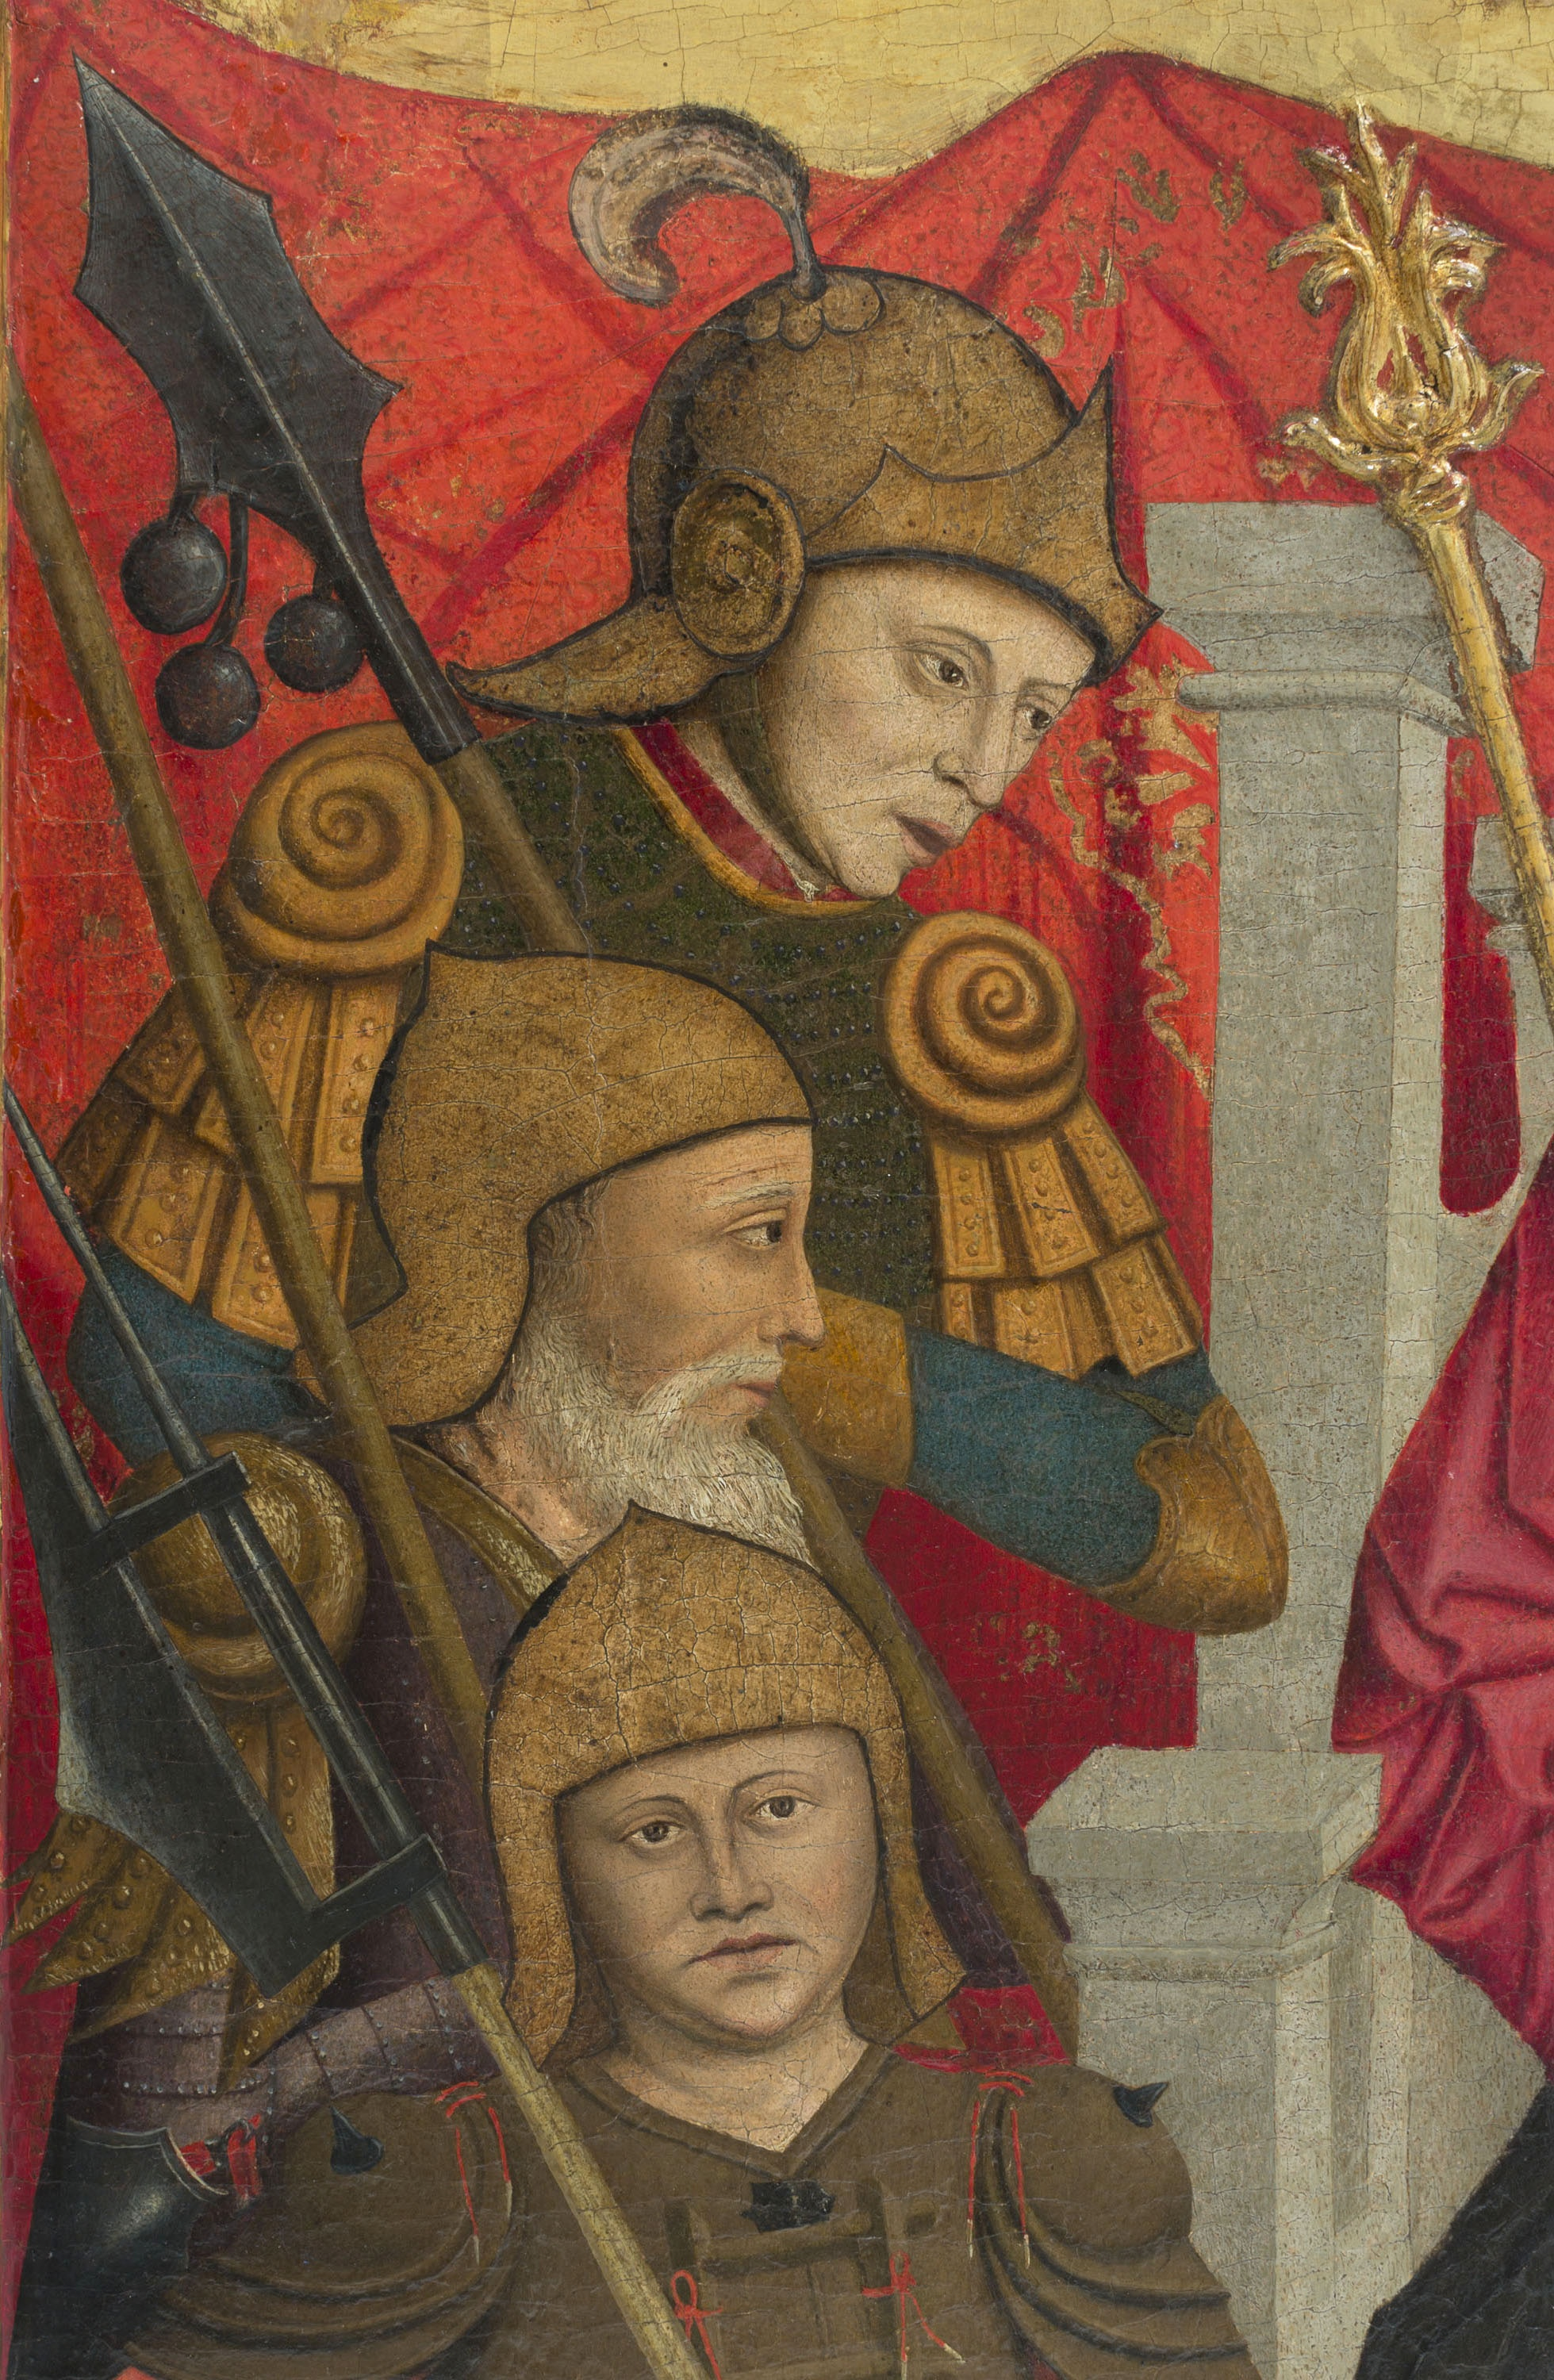 Lluís Dalmau - The Beheading of Saint Baudilus - circa 1448 [4]